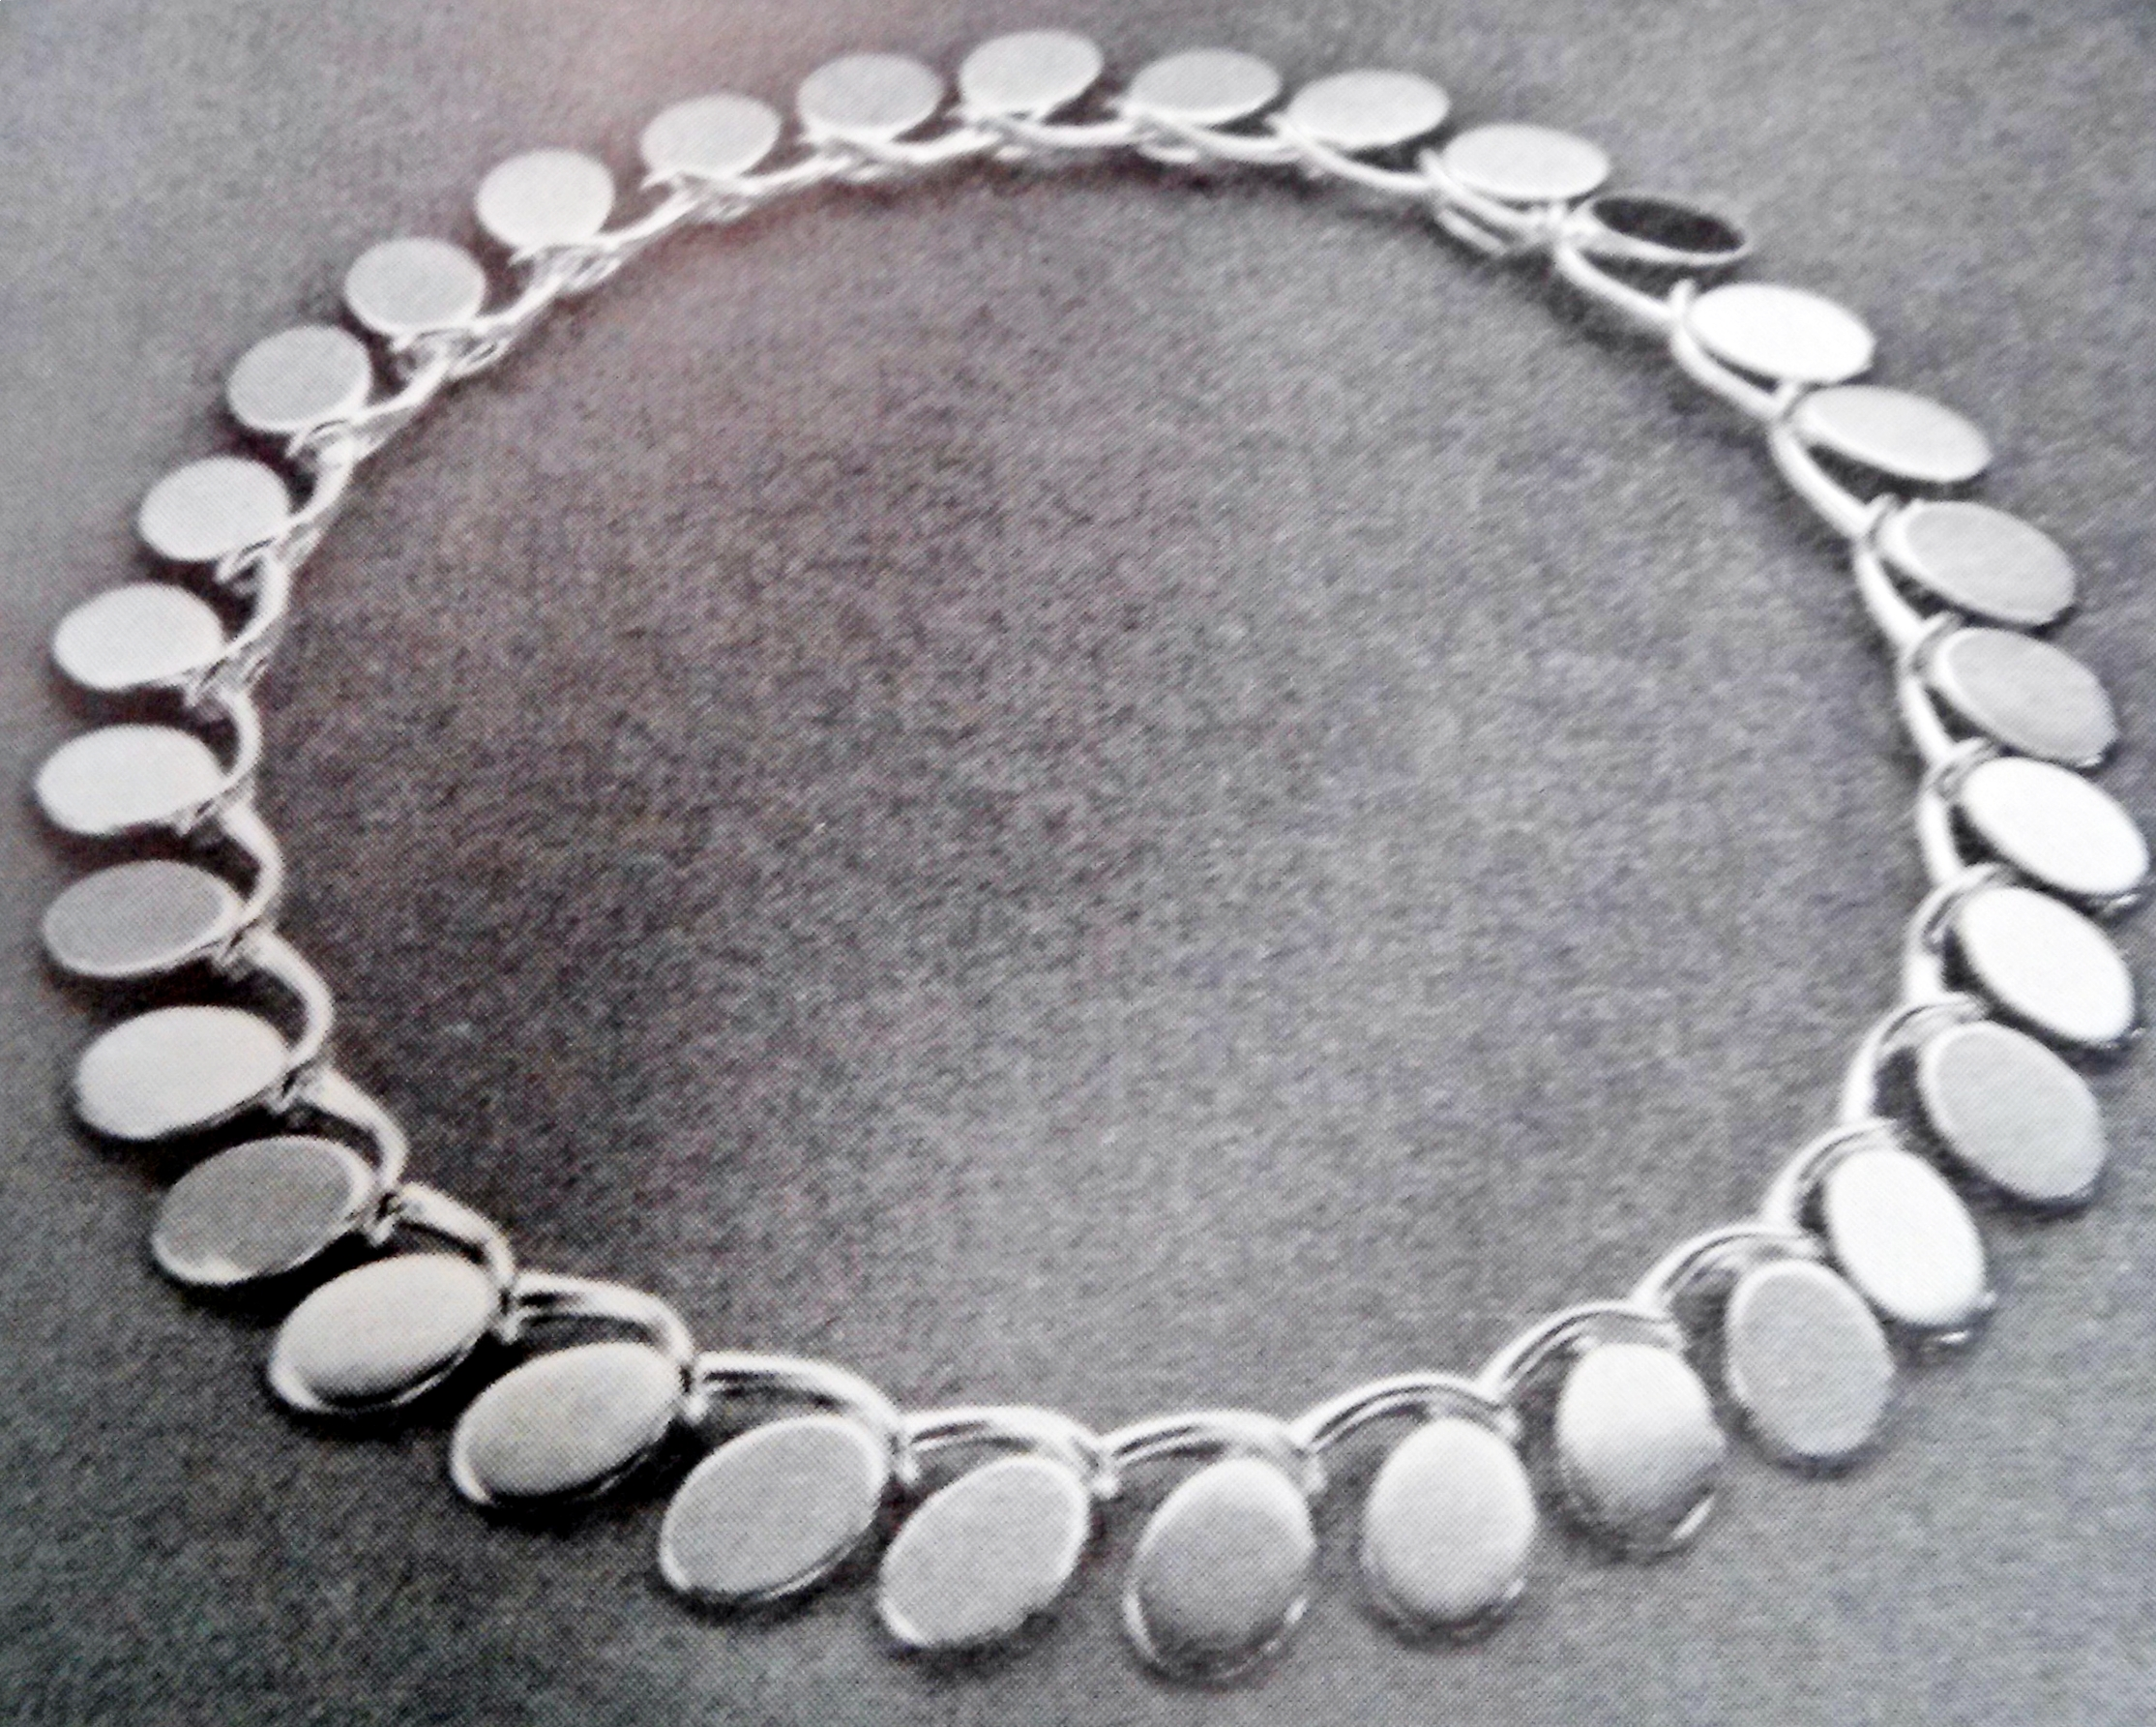 """""""The necklace shown in silver from Bent Gabrielsen was designed in 1957 for the Hans Hansen Silversmithy in Koldinghus. The necklace uses a clear yellow enamelling on the front, with black enamel on the clasp. Each link is identical to the next, and grasp each other like holding hands in a long chain. The piece represents a clearly thought out plan using an organic shapes to create interlocking grommets and insert as part of the links, separating it from your average chain jewelry."""" - Translated from the text accompanying the photo."""